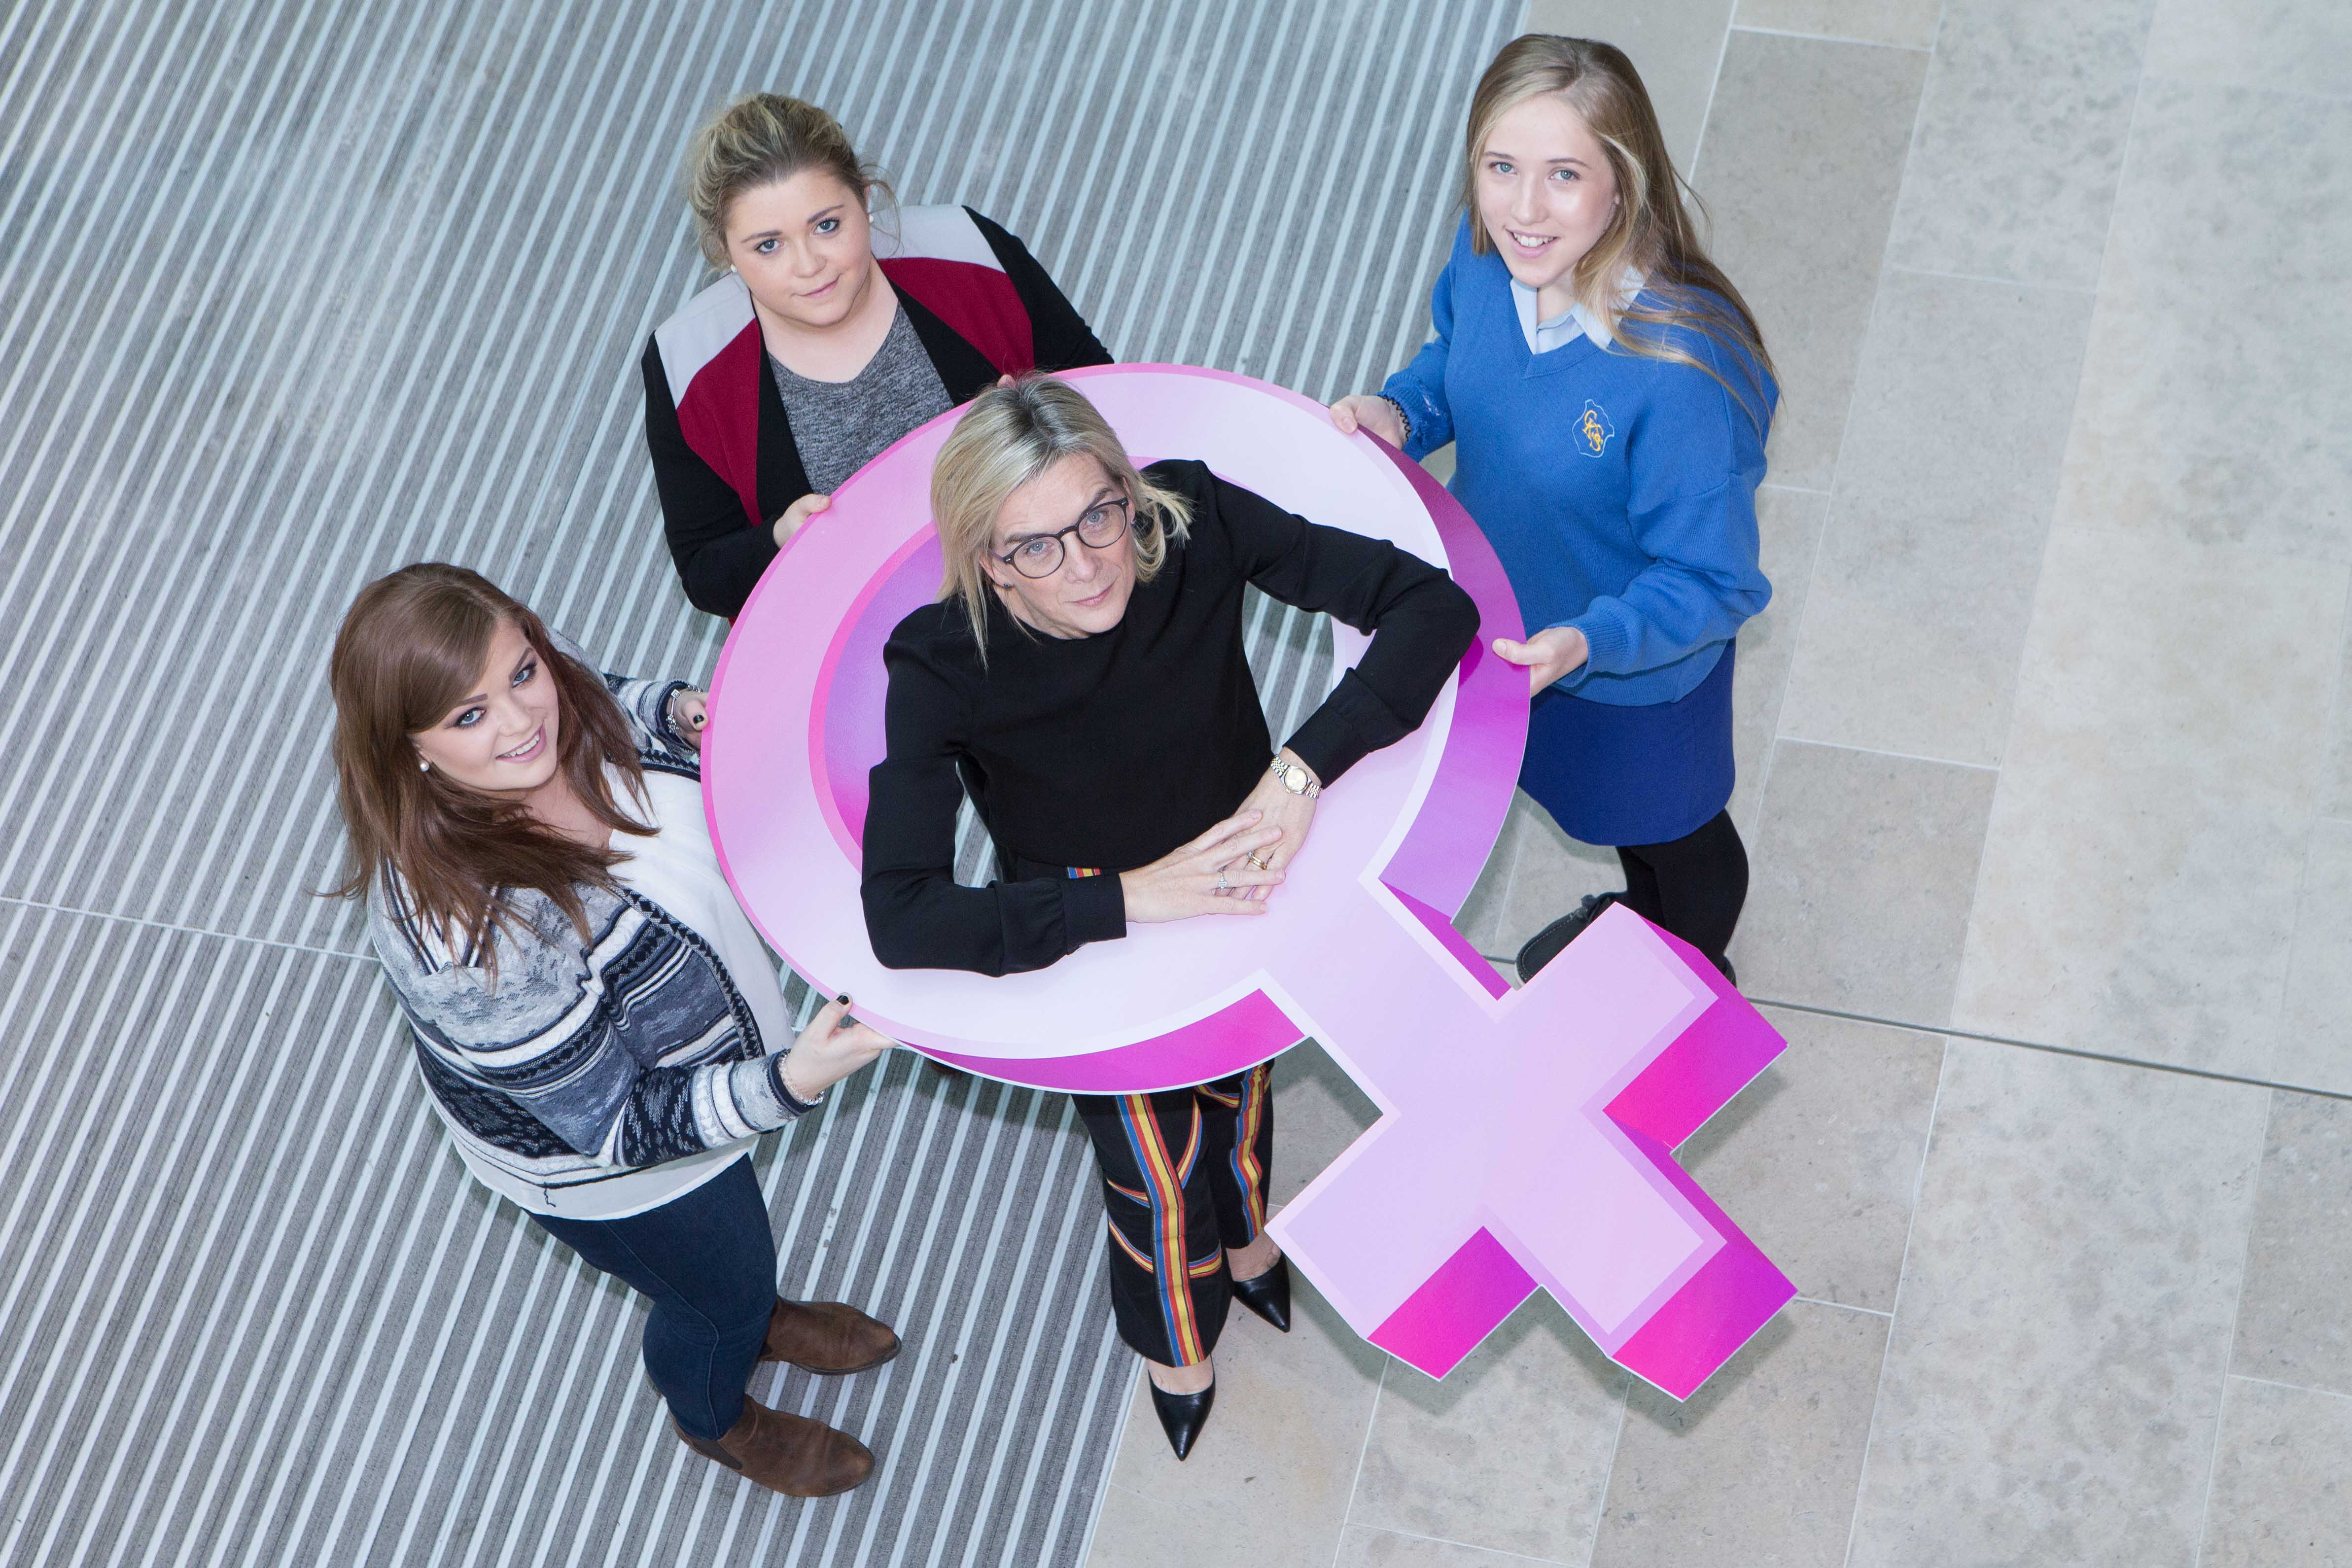 I Wish' Initiative Calls To Change Gender Imbalance In Science ...